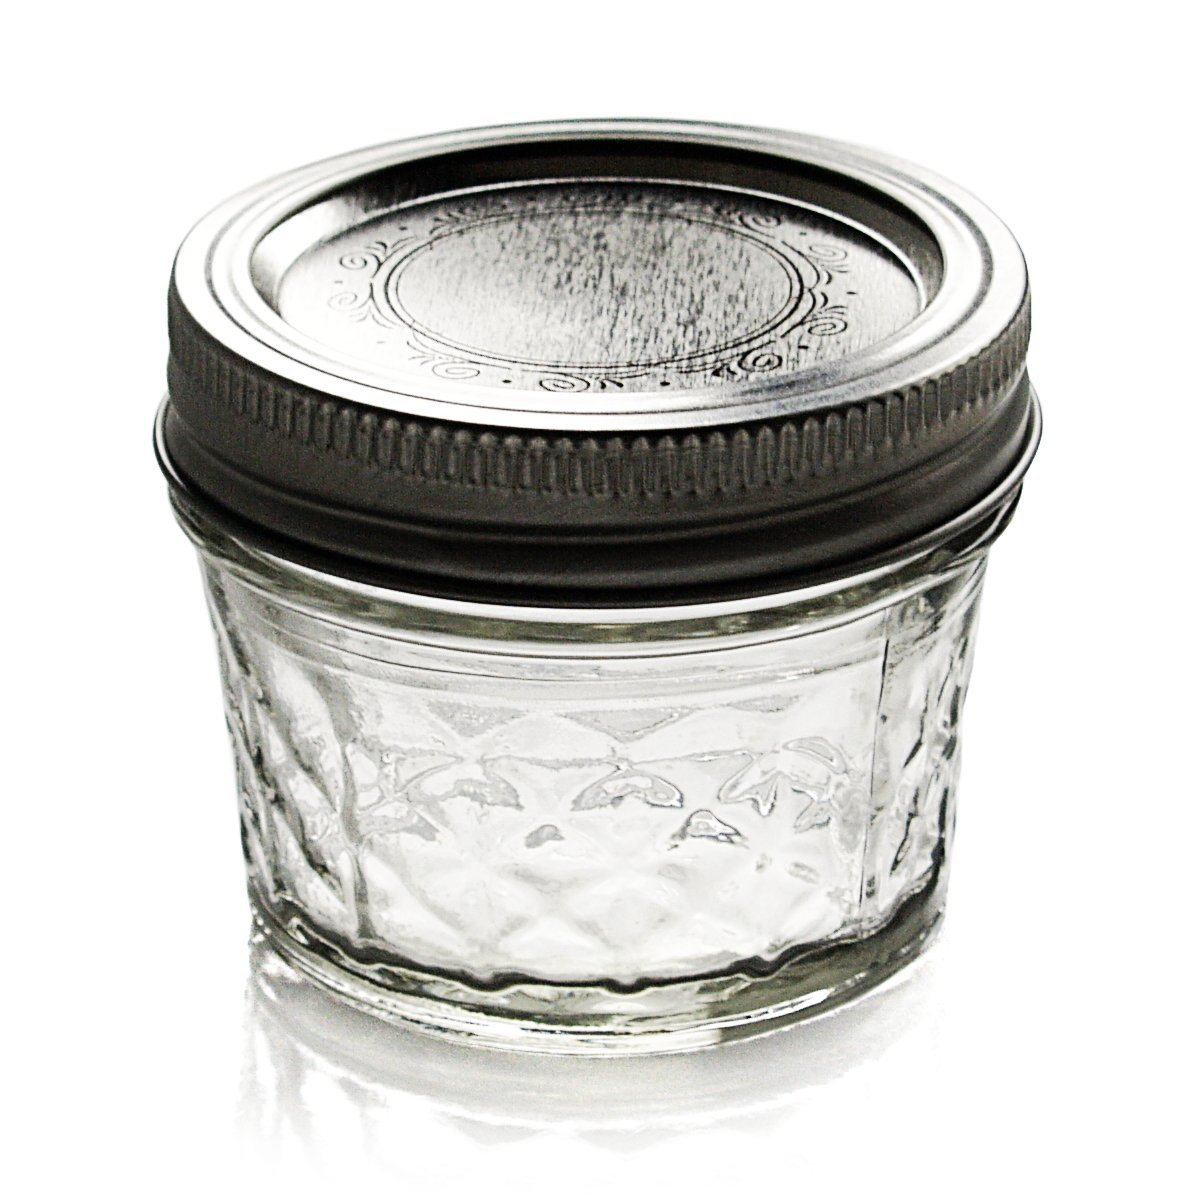 Ball Quilted Crystal Jelly Jar – Clear 4oz – Set of 12 | Kombi ... : ball 4 oz quilted jelly jars - Adamdwight.com